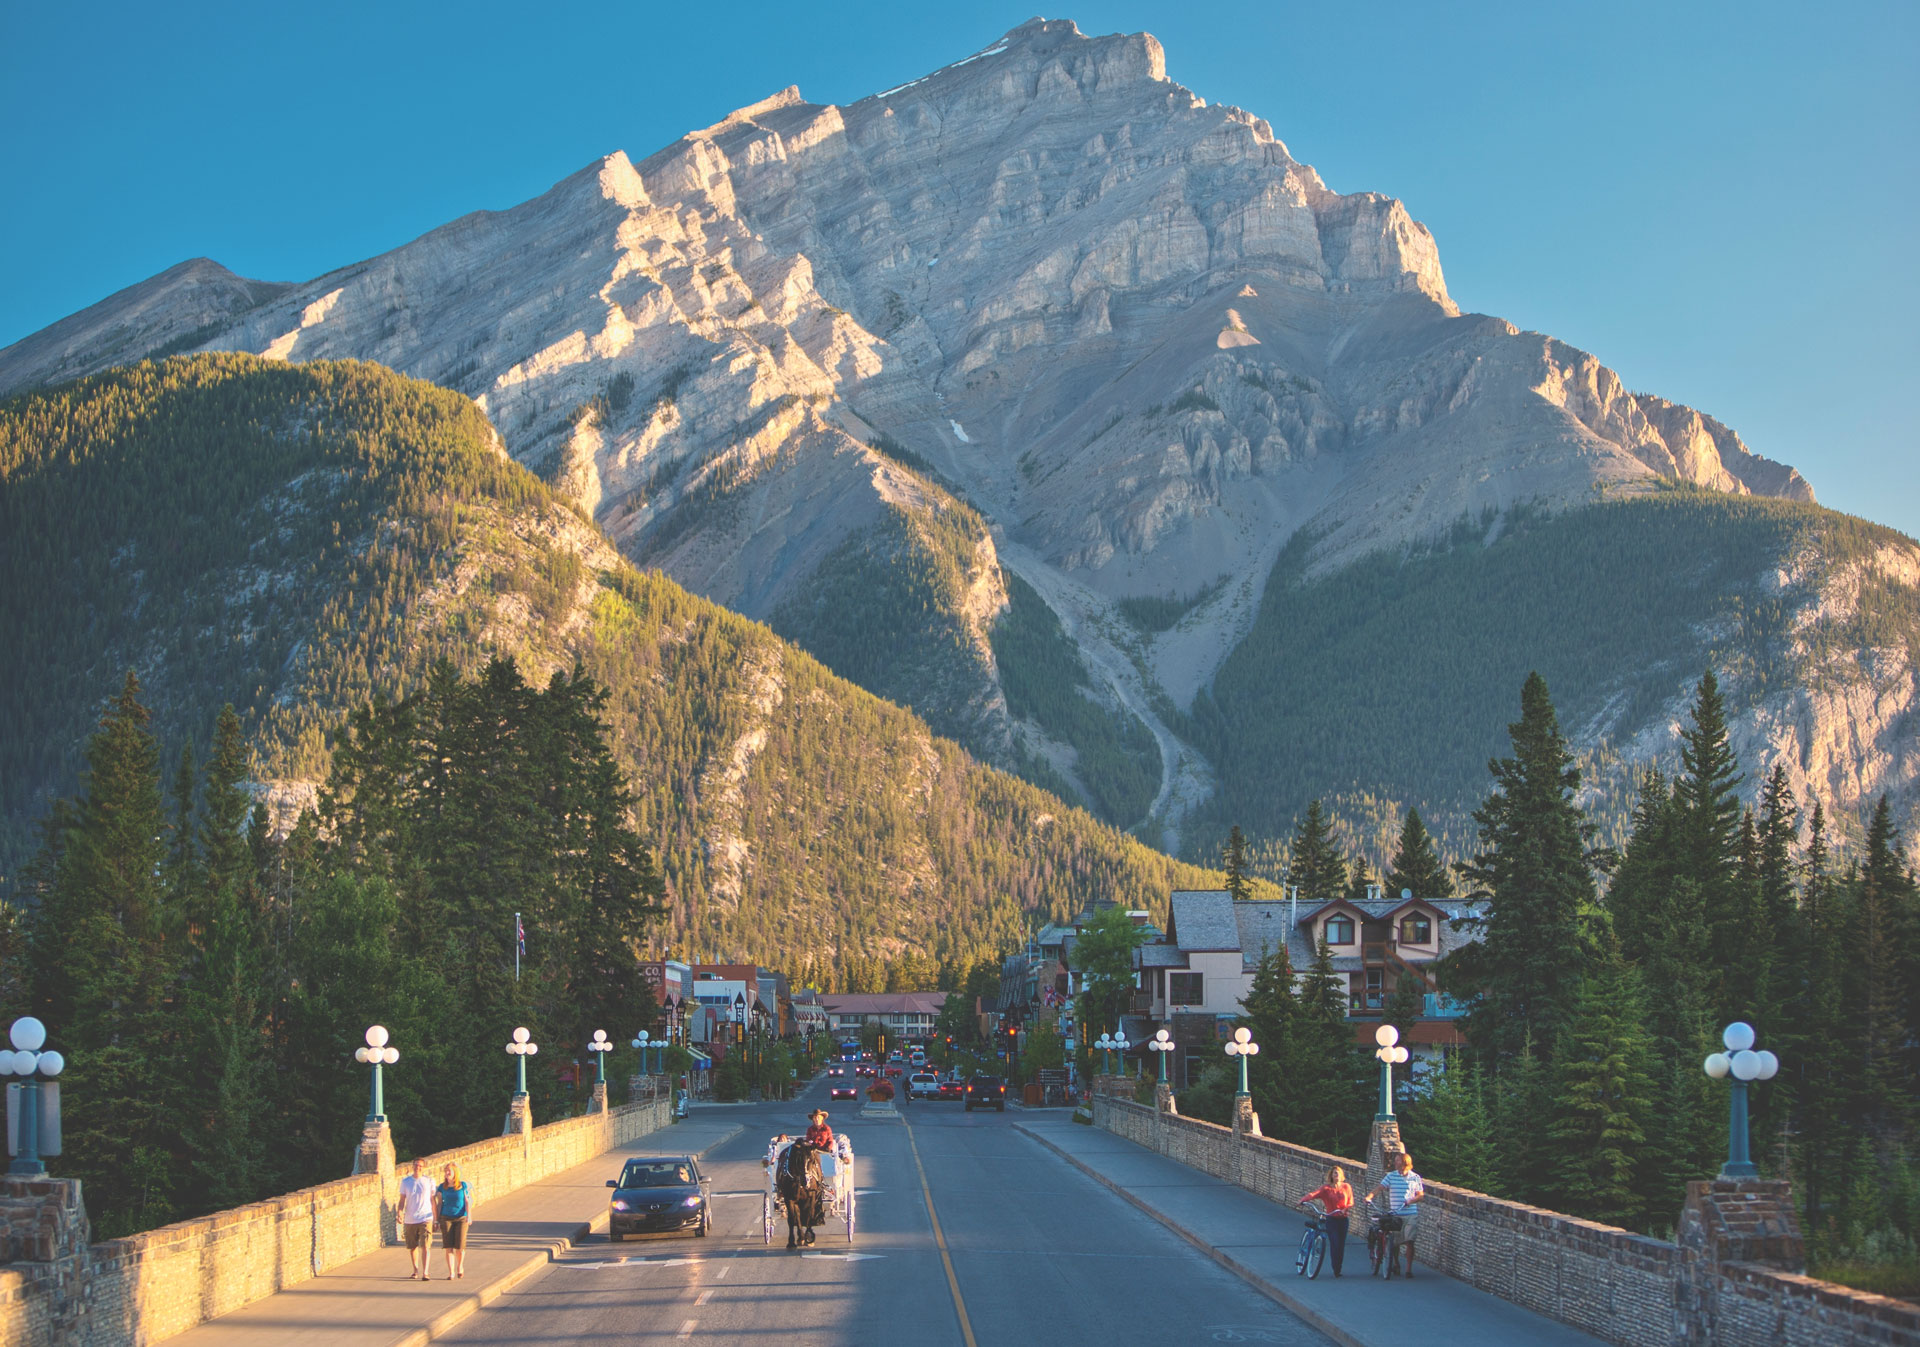 Town of Banff in the summer